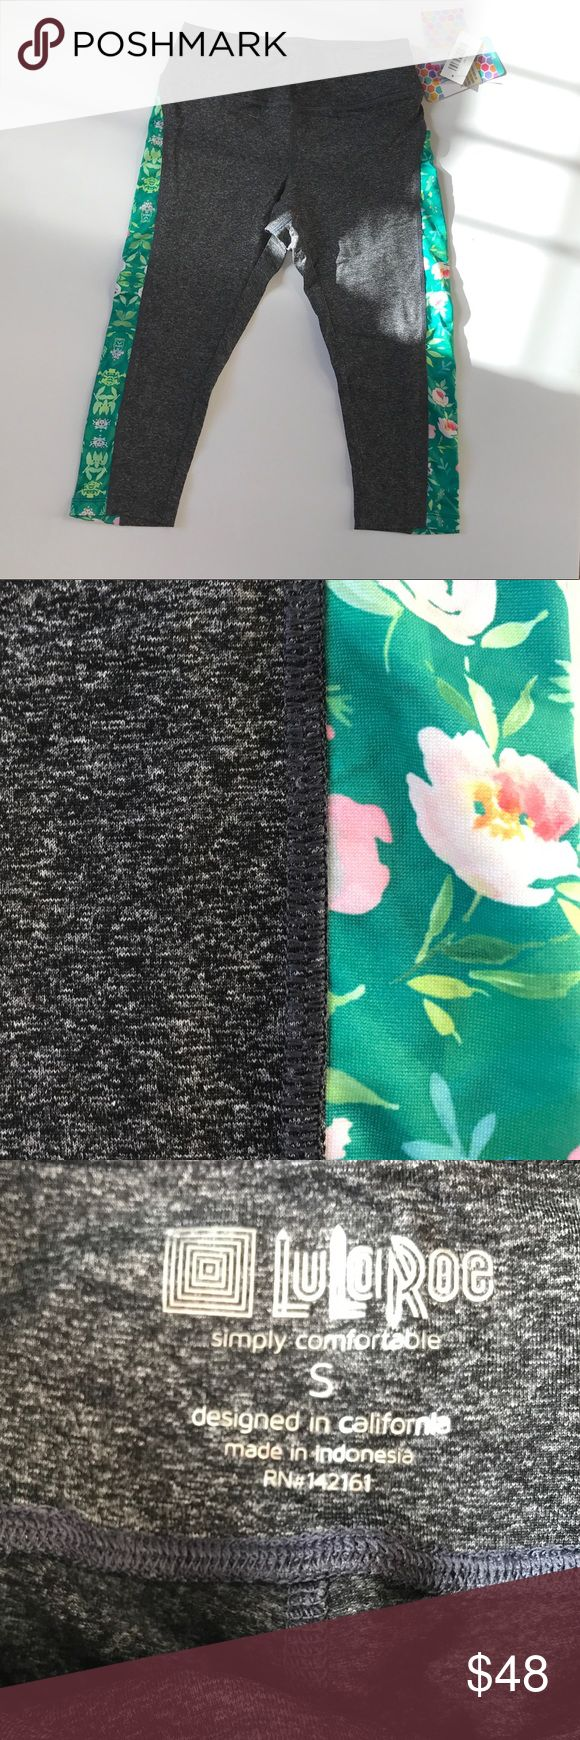 NWT Small LuLaRoe Jade Workout Leggings NWT LuLaRoe Jade Leggings in a dark heathered gray with floral accent on the outside of leg. The Jades are the ankle length workout leggings. These are perfect for workout out & features moisture wicking technology. Smoke free home and all items are incredibly well taken care of. LuLaRoe Pants Leggings